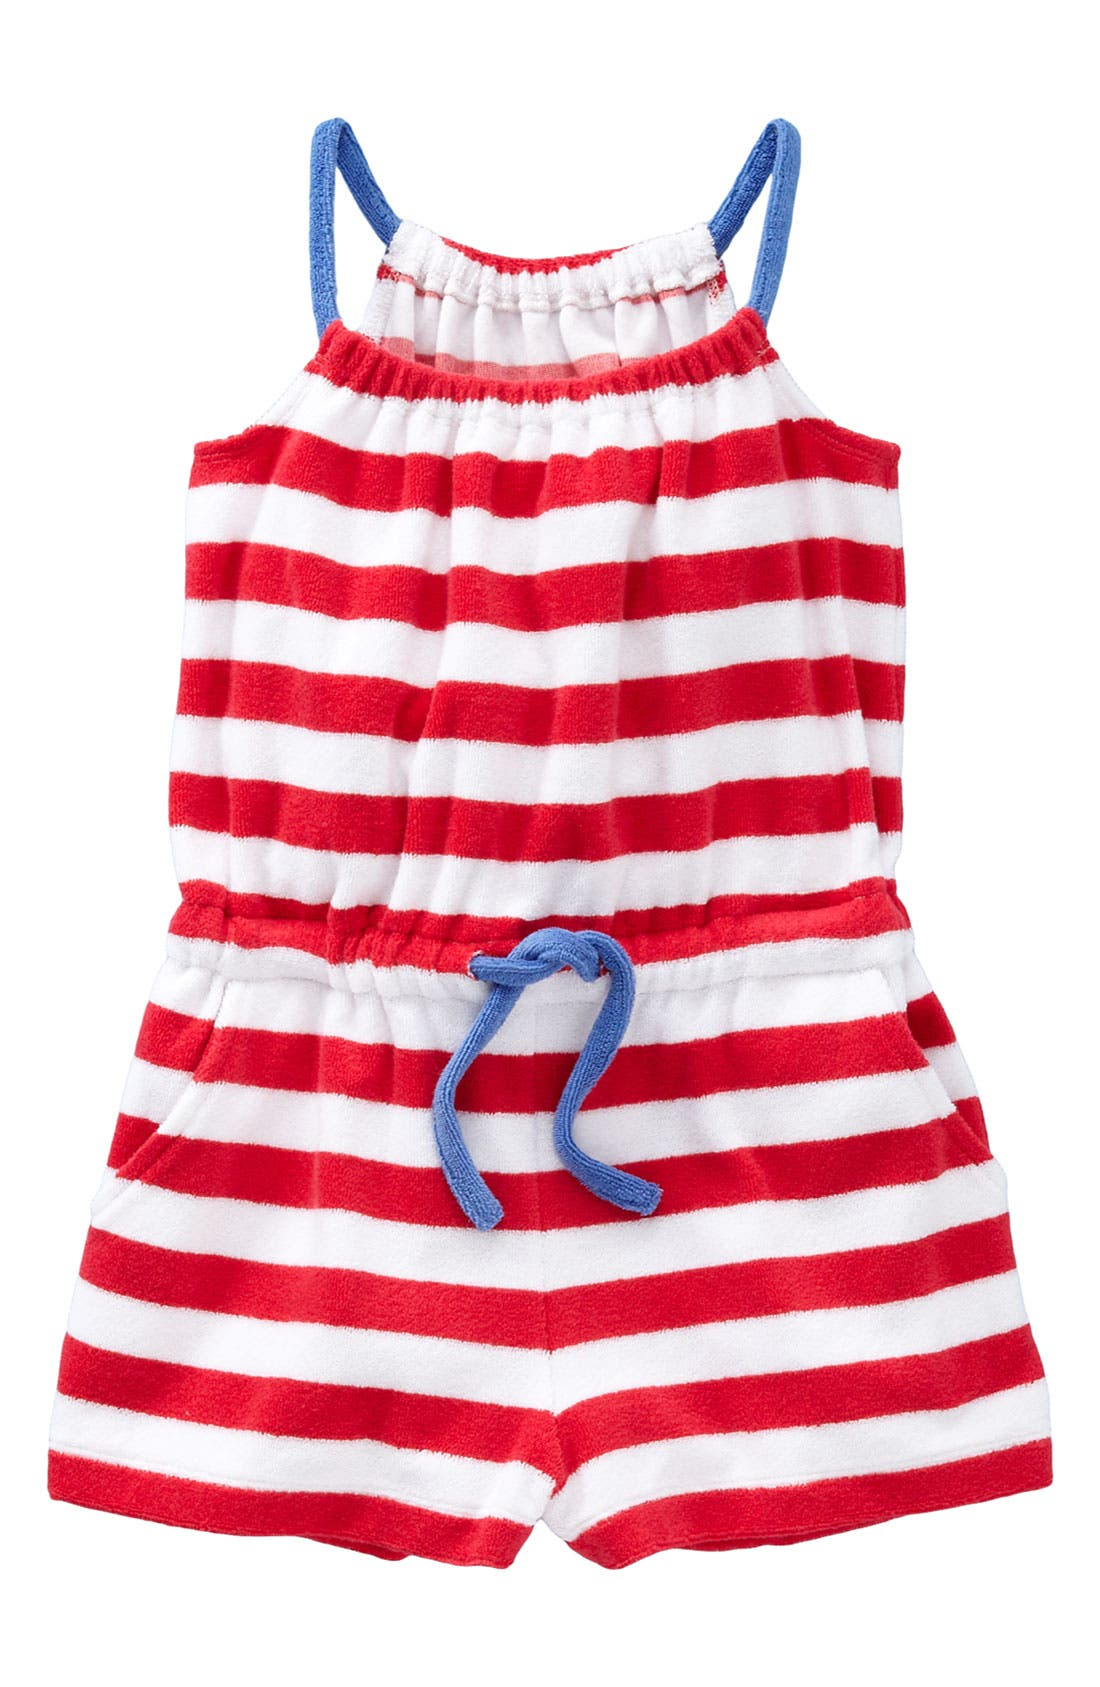 Main Image - Mini Boden Romper (Toddler)